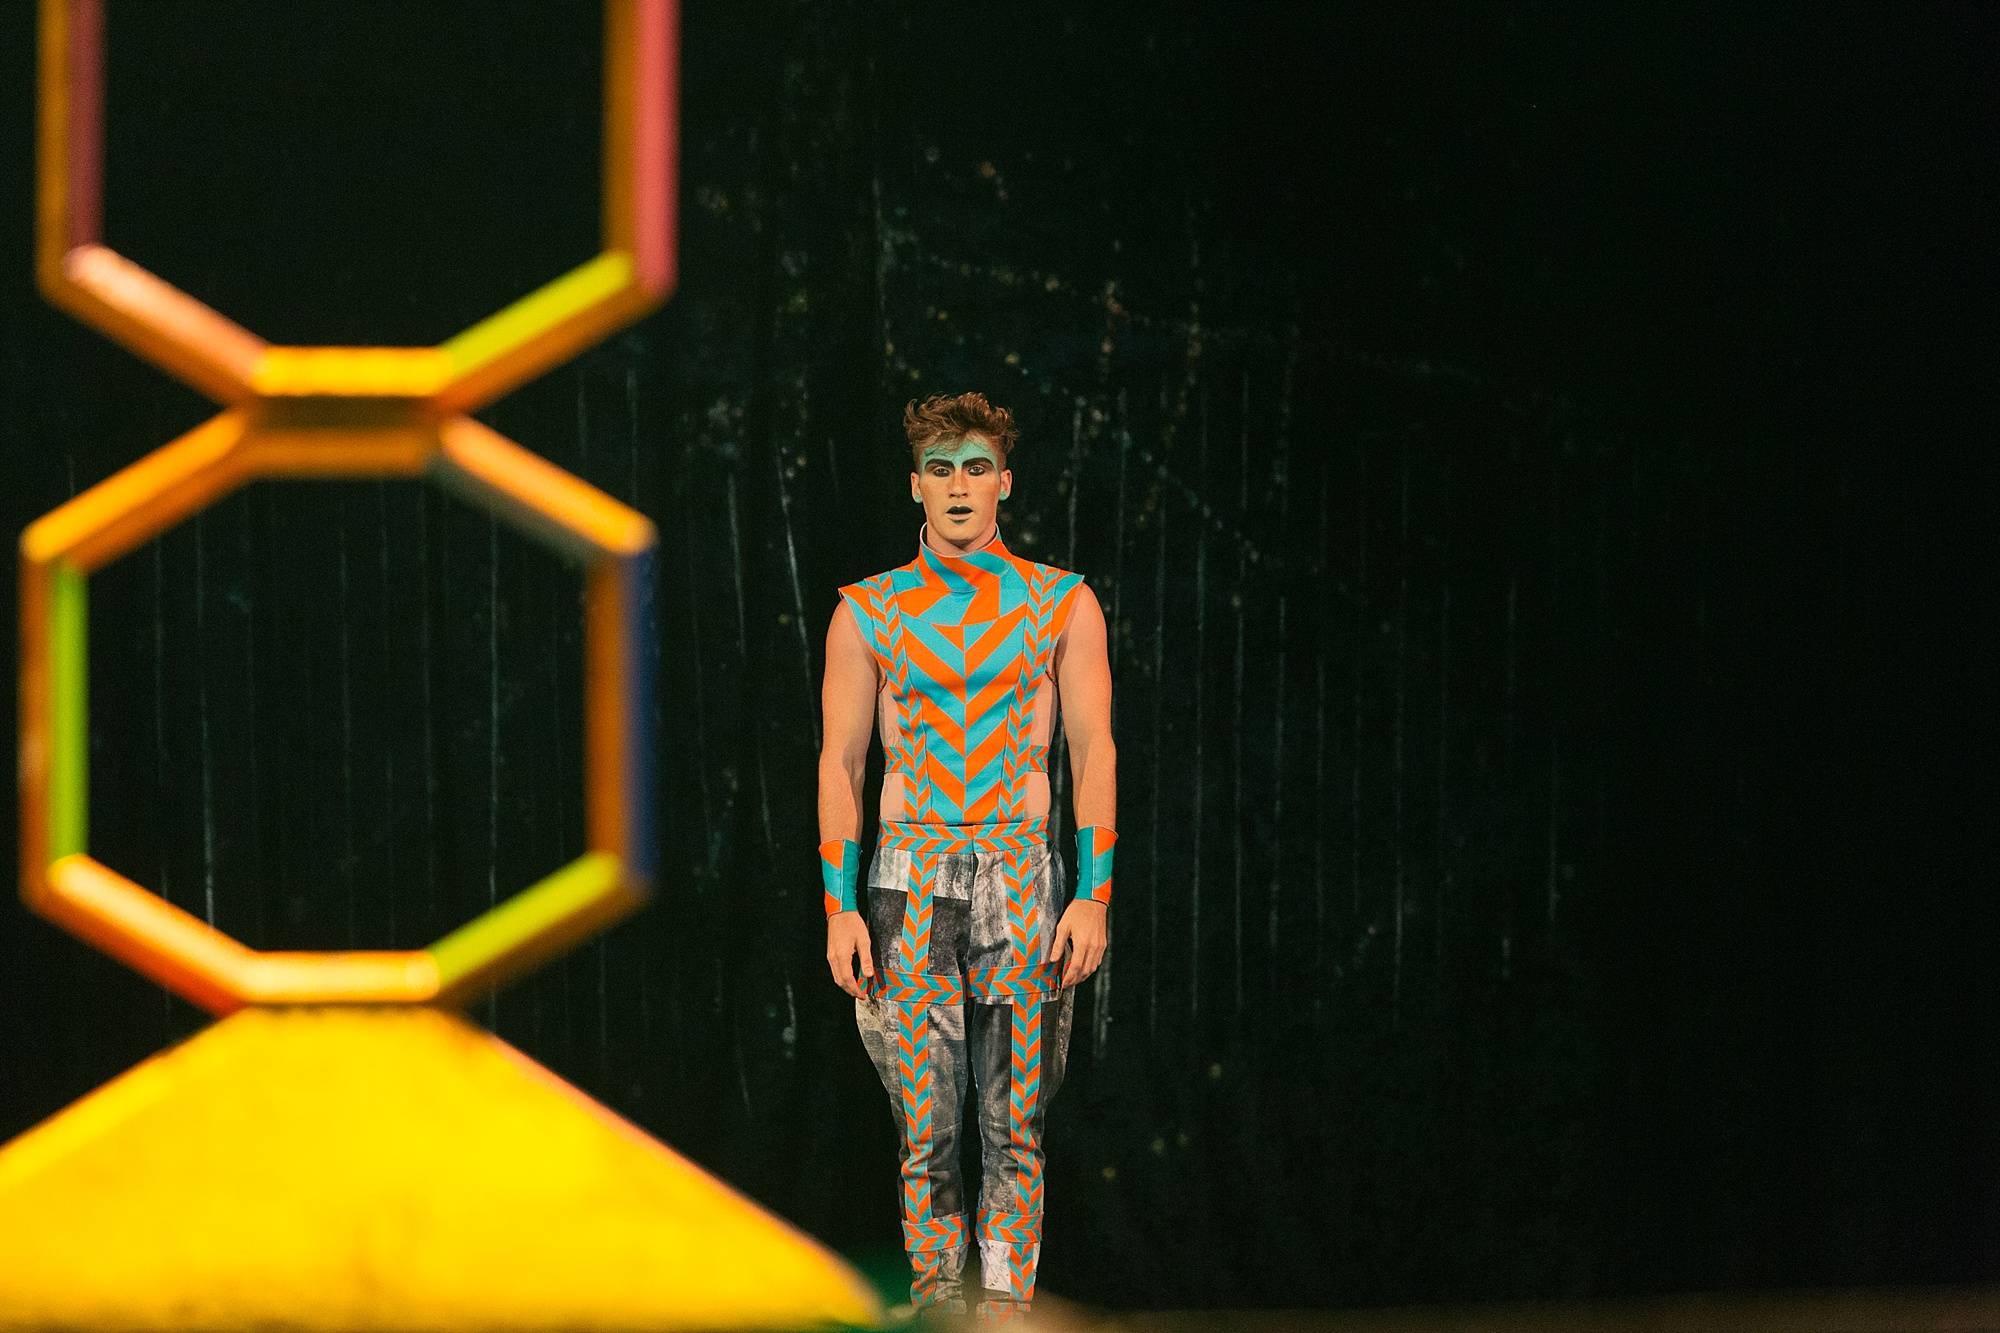 Joe_Mac_Creative_cirque_du_soleil_volta_Greater Philadelphia_Expo_Center_Oaks_PA_Visit_Valley _Forge_0029.jpg